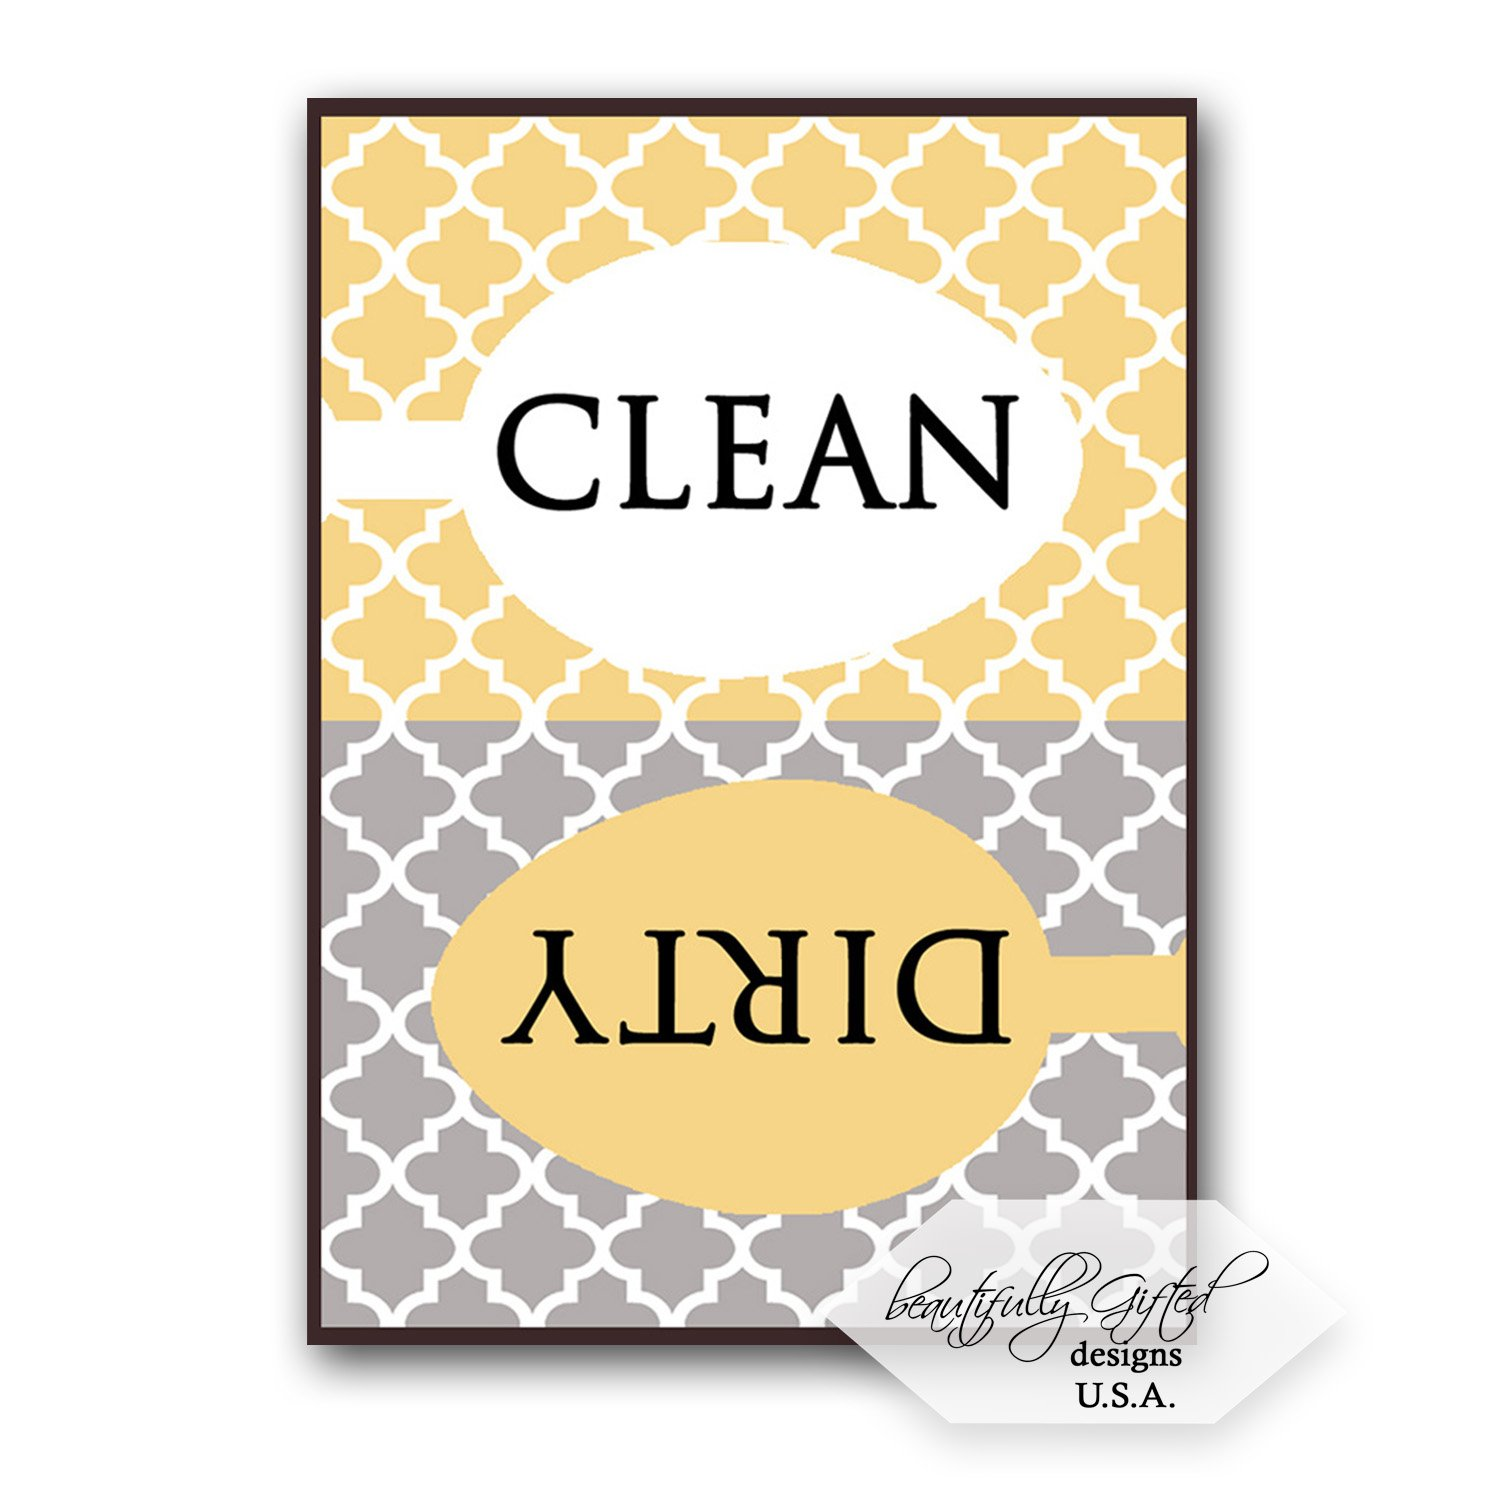 Clean Dirty Dishwasher Magnet Sign - Elegant Moroccan Trellis Pattern - Grey/Yellow Gold- 2.5 x 3.5 - Housewarming, Mother's Father's Day or Gag Gift Idea/Stocking Stuffers for Men Women Teens